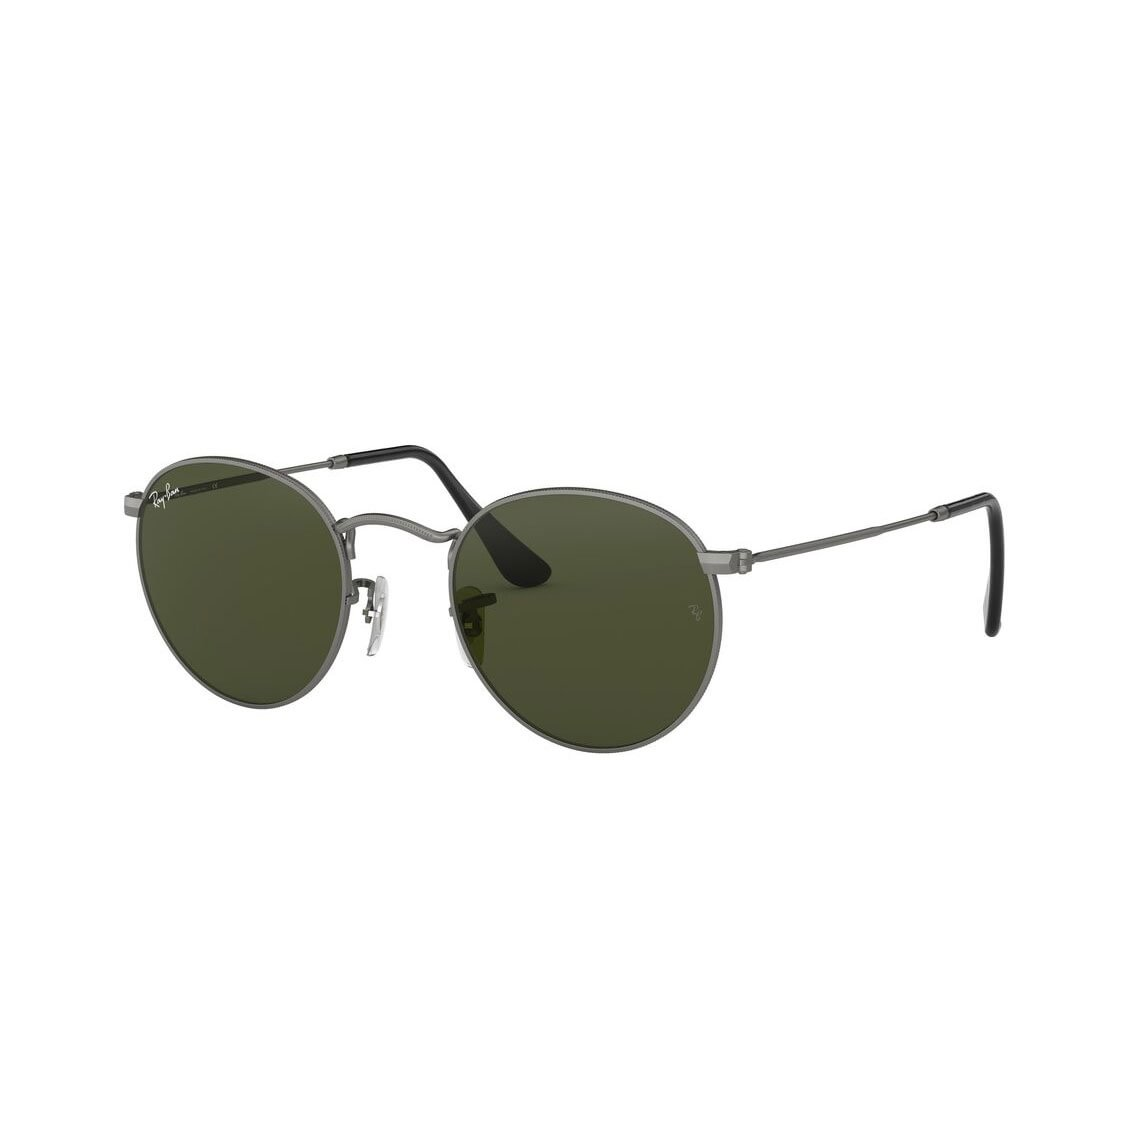 Ray-Ban Round metal RB3447 029 53